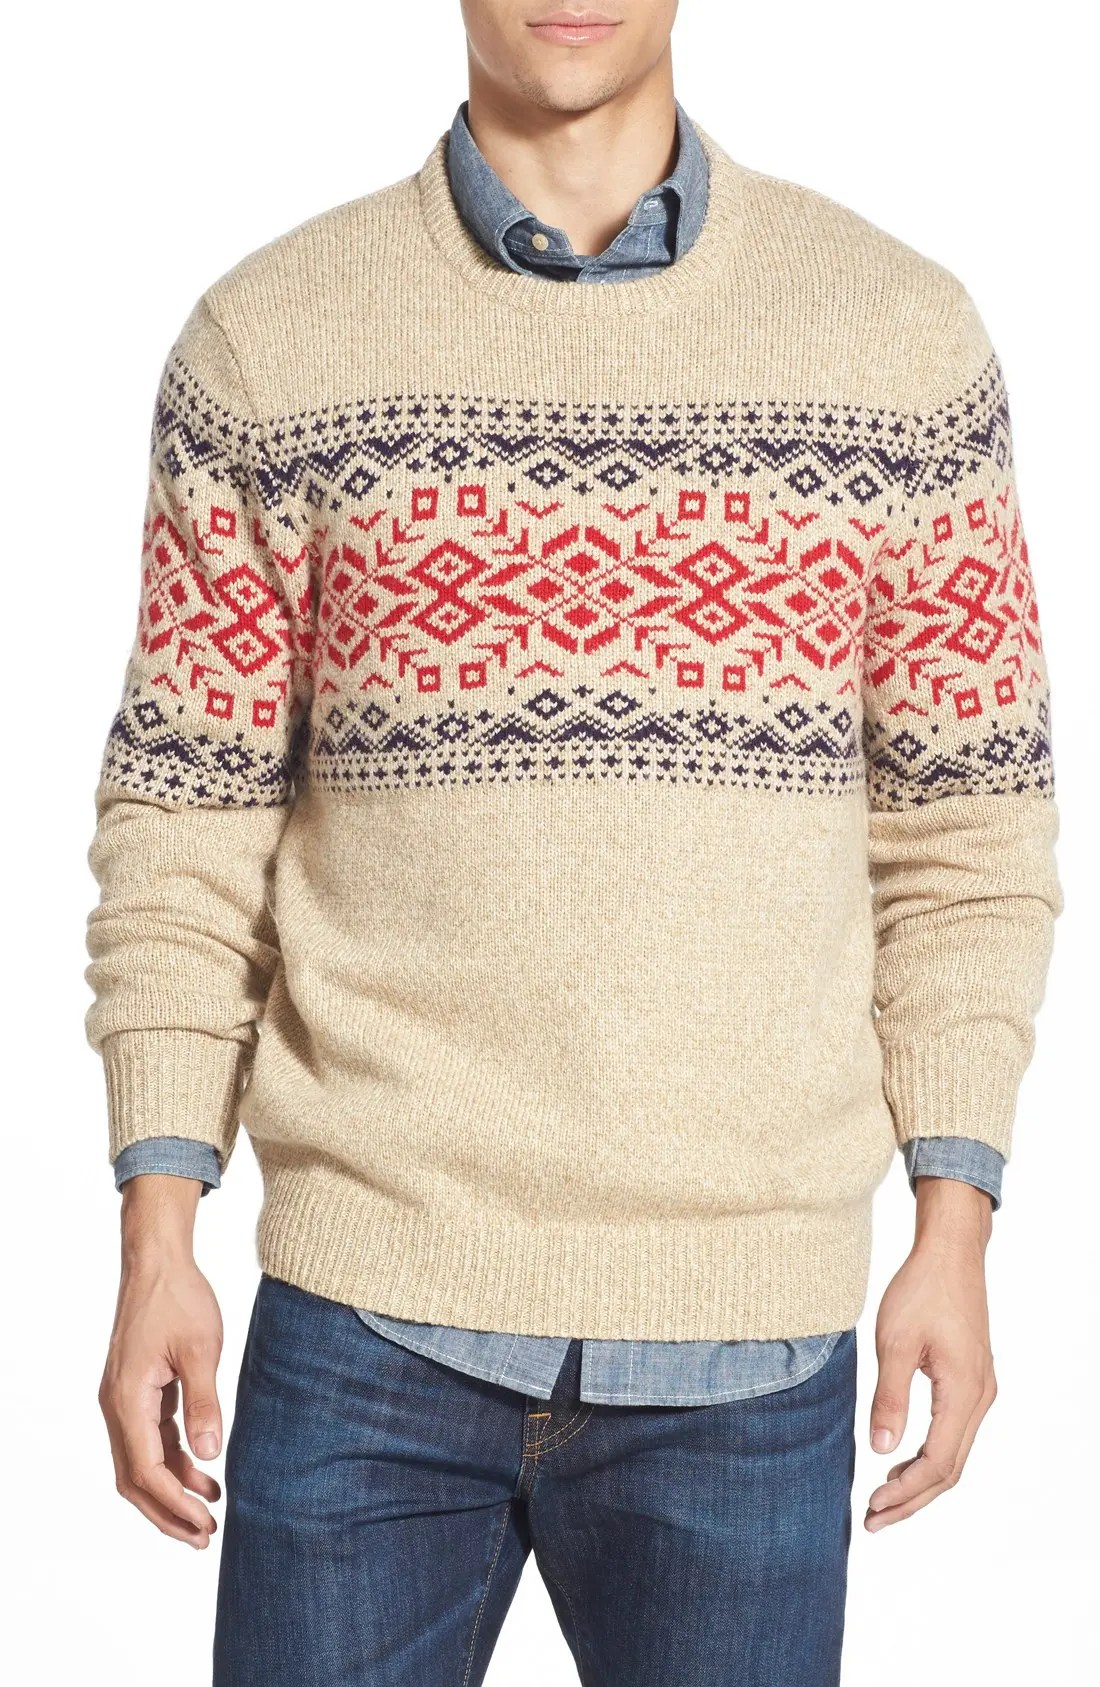 rag fair isle crewneck sweater with suede elbow patches main color also vineyard vines rh shoprdstrom